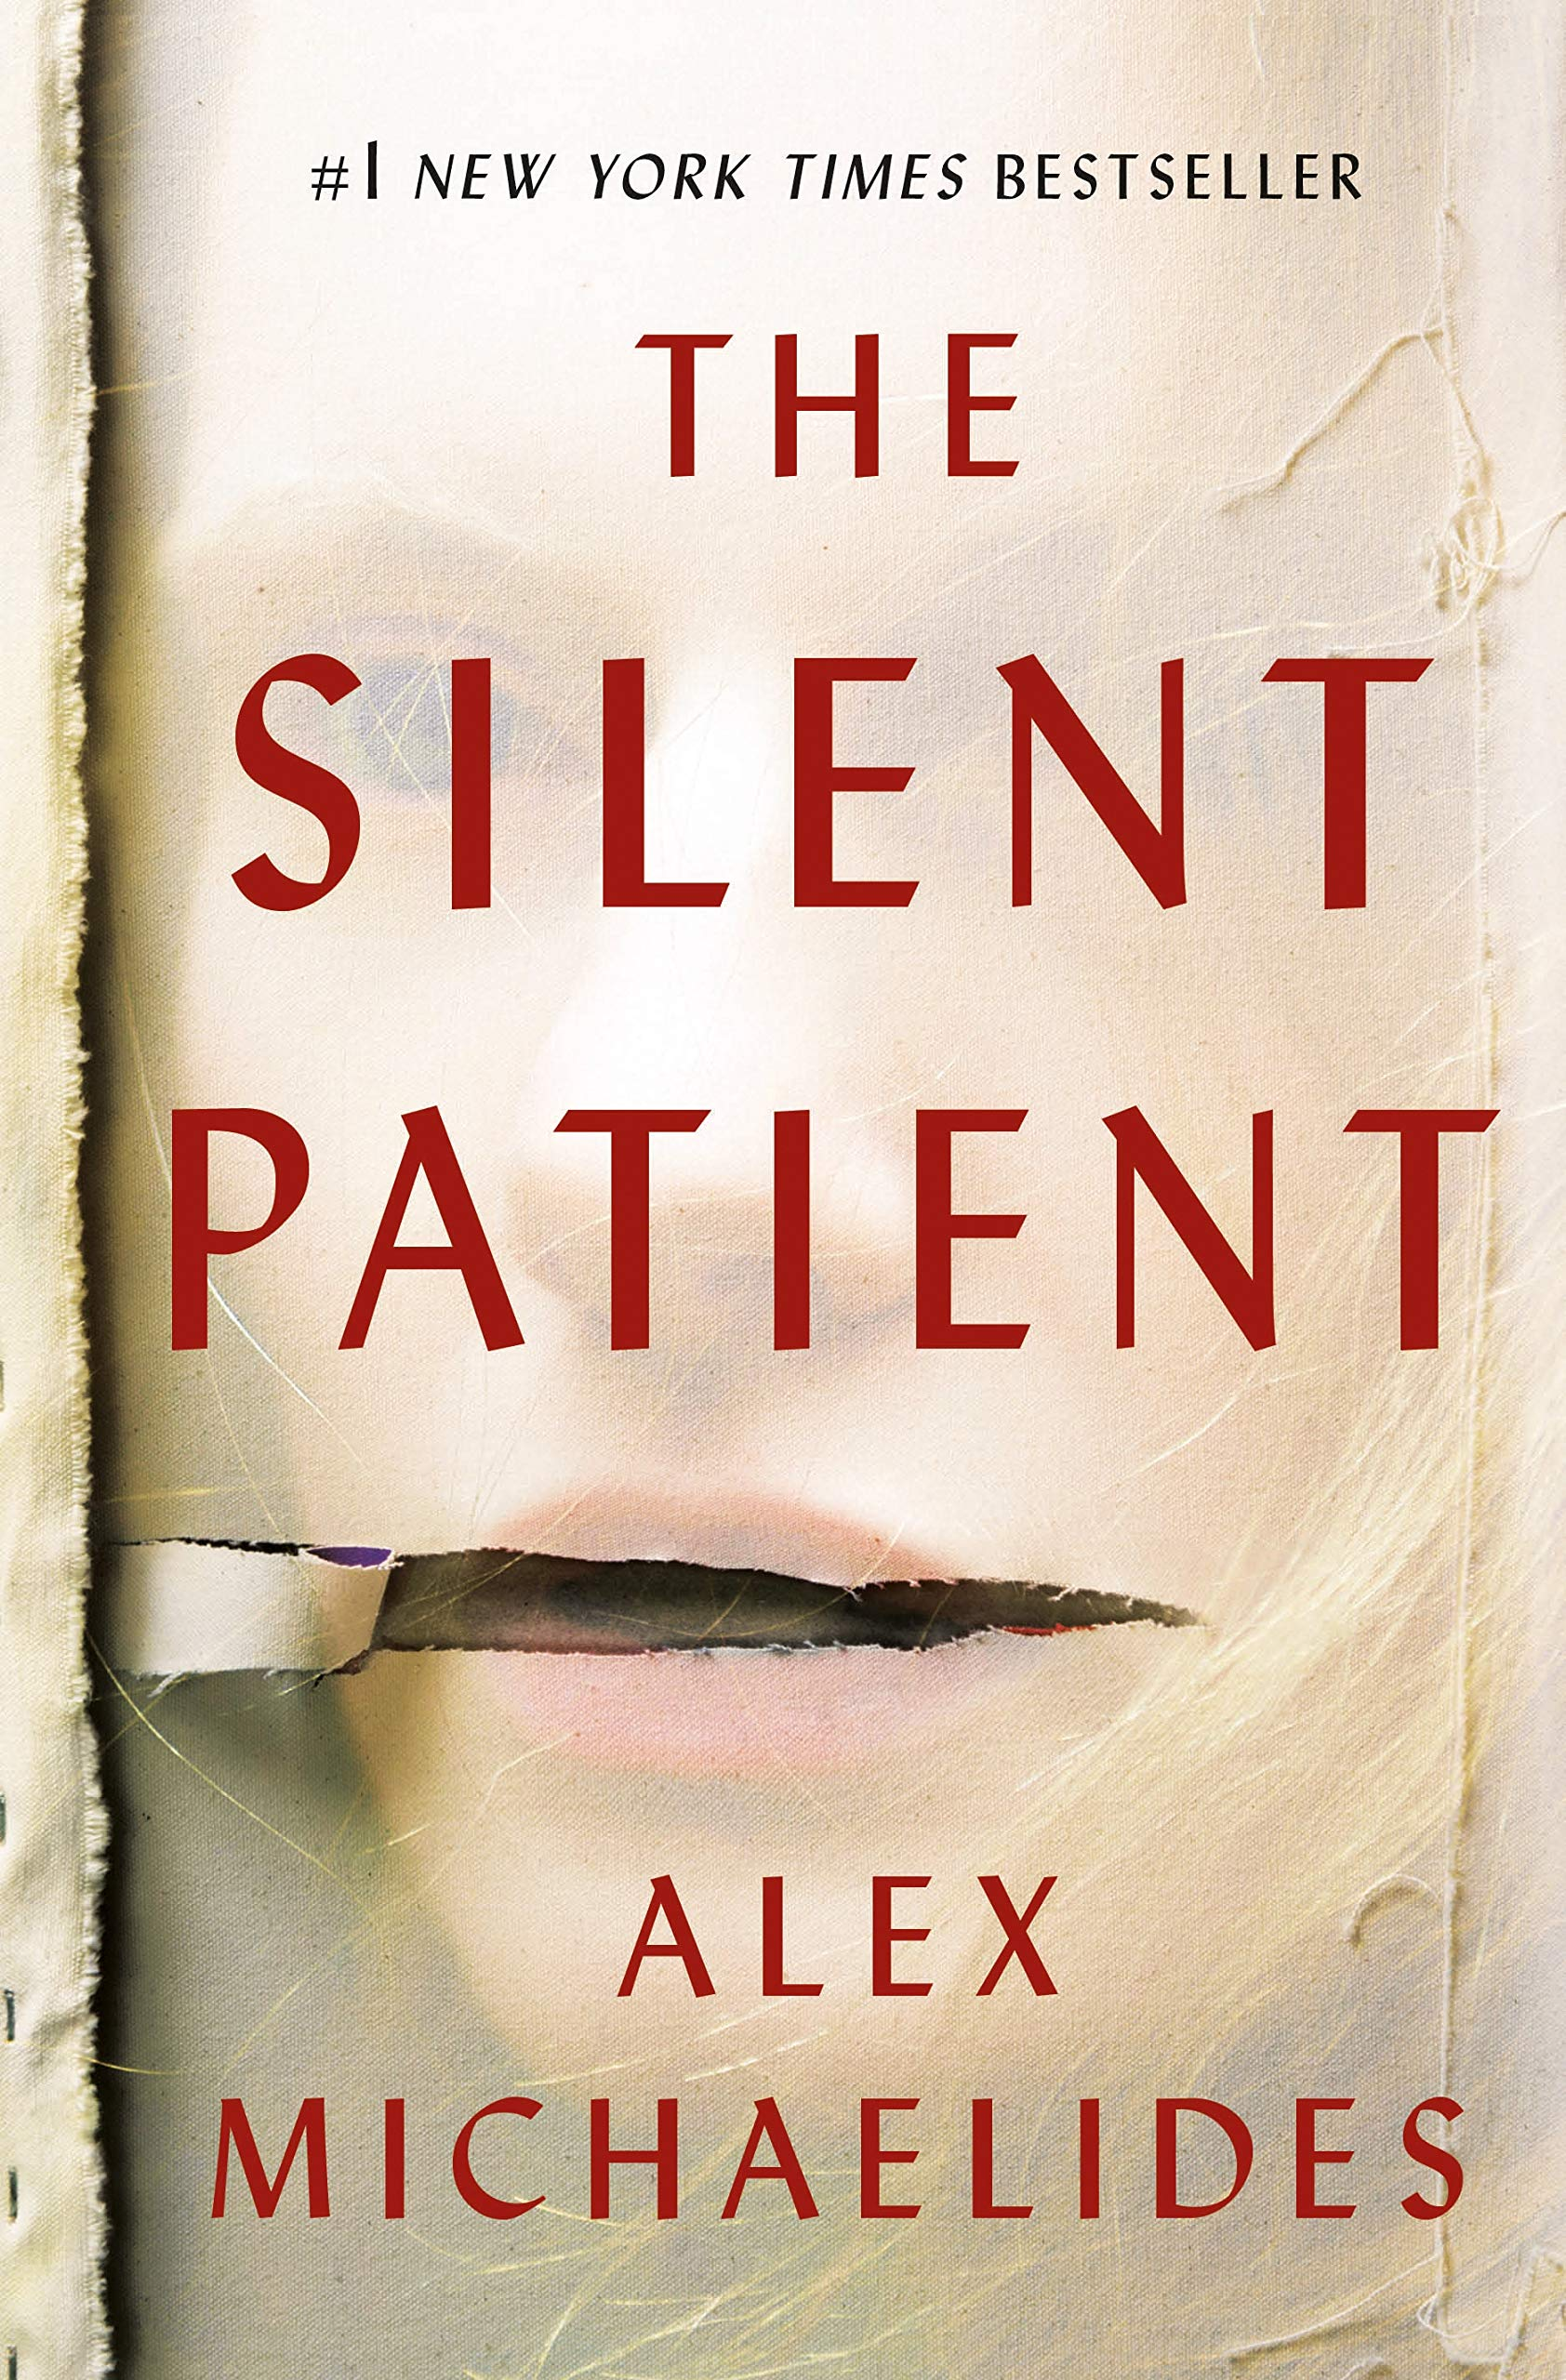 Amazon.com: The Silent Patient (9781250301697): Michaelides, Alex: Books